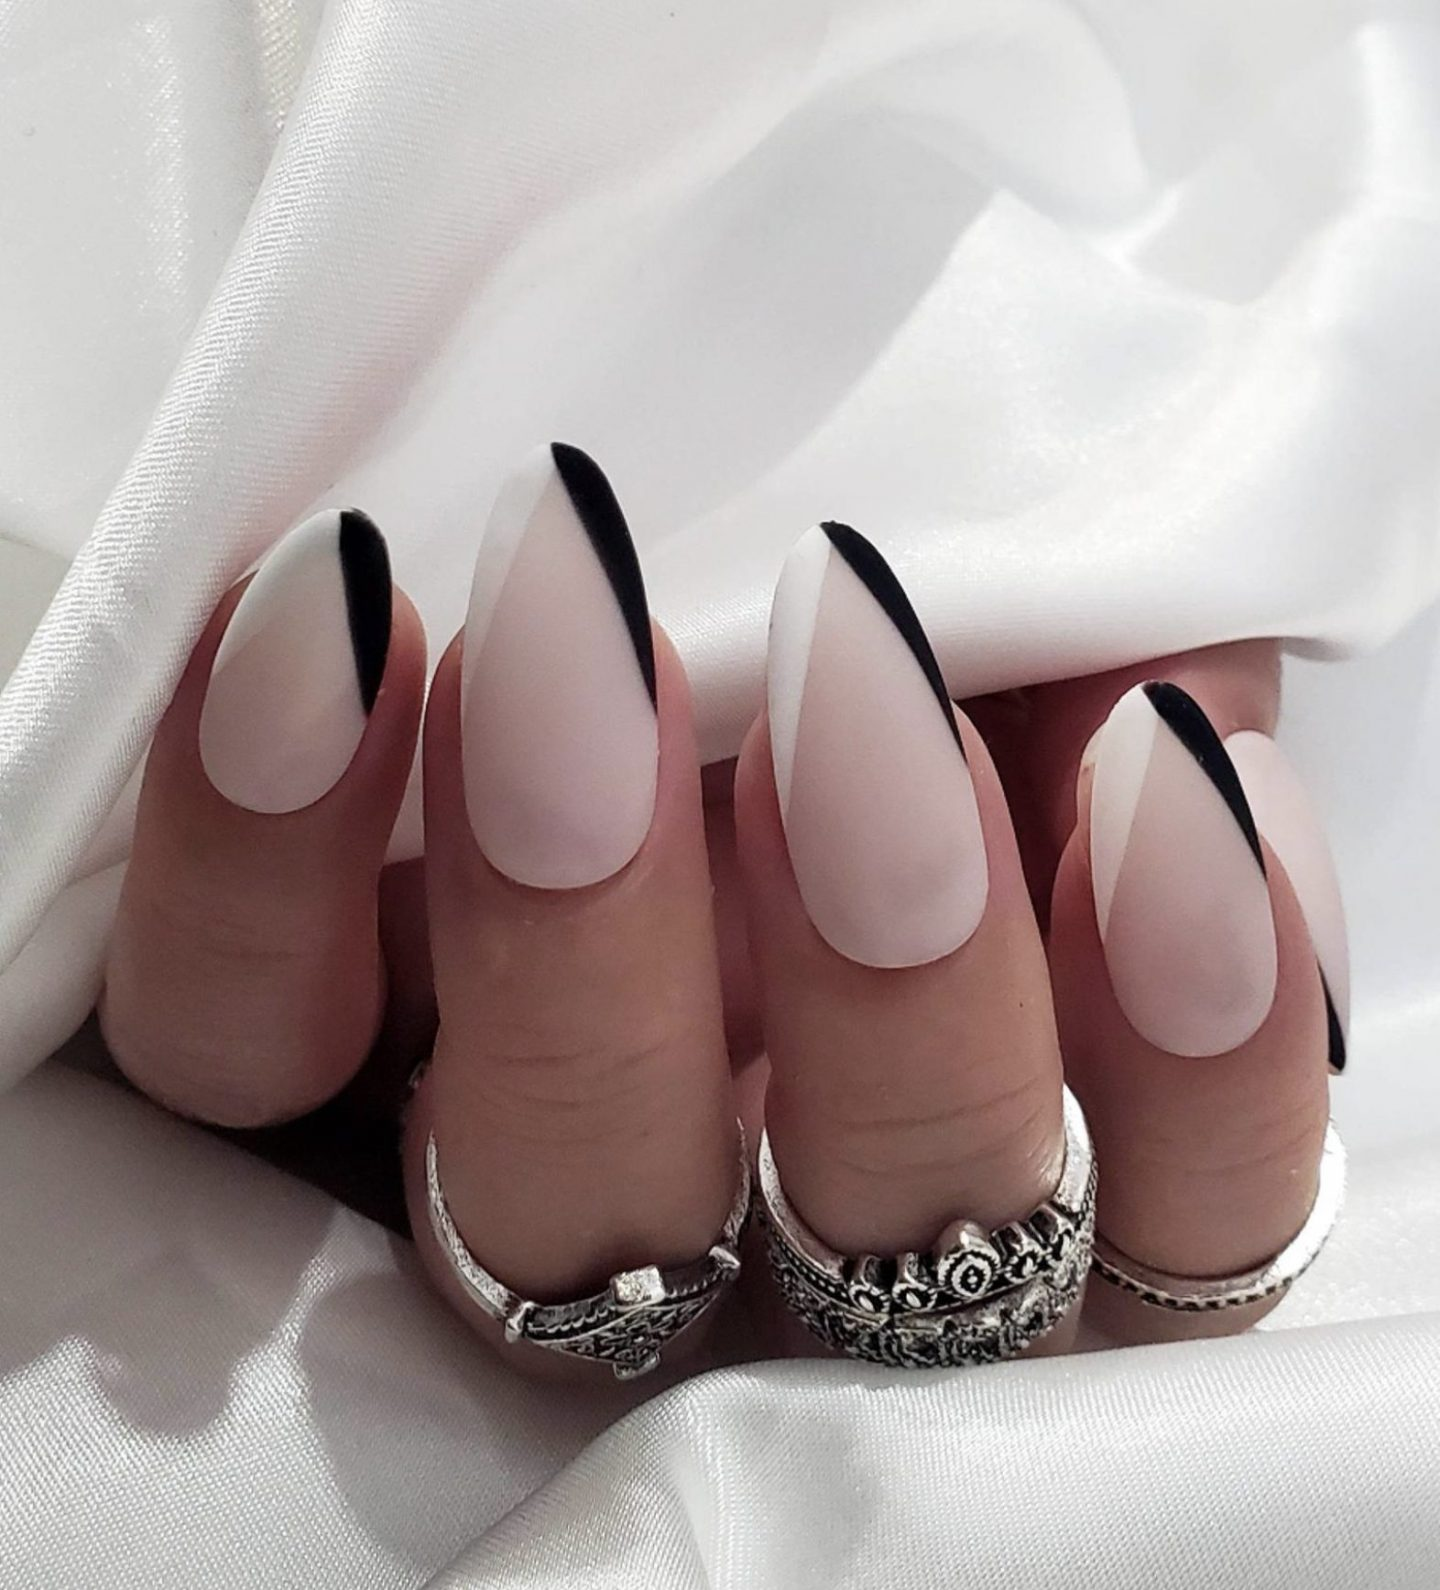 Minimalist black and white French tip nails